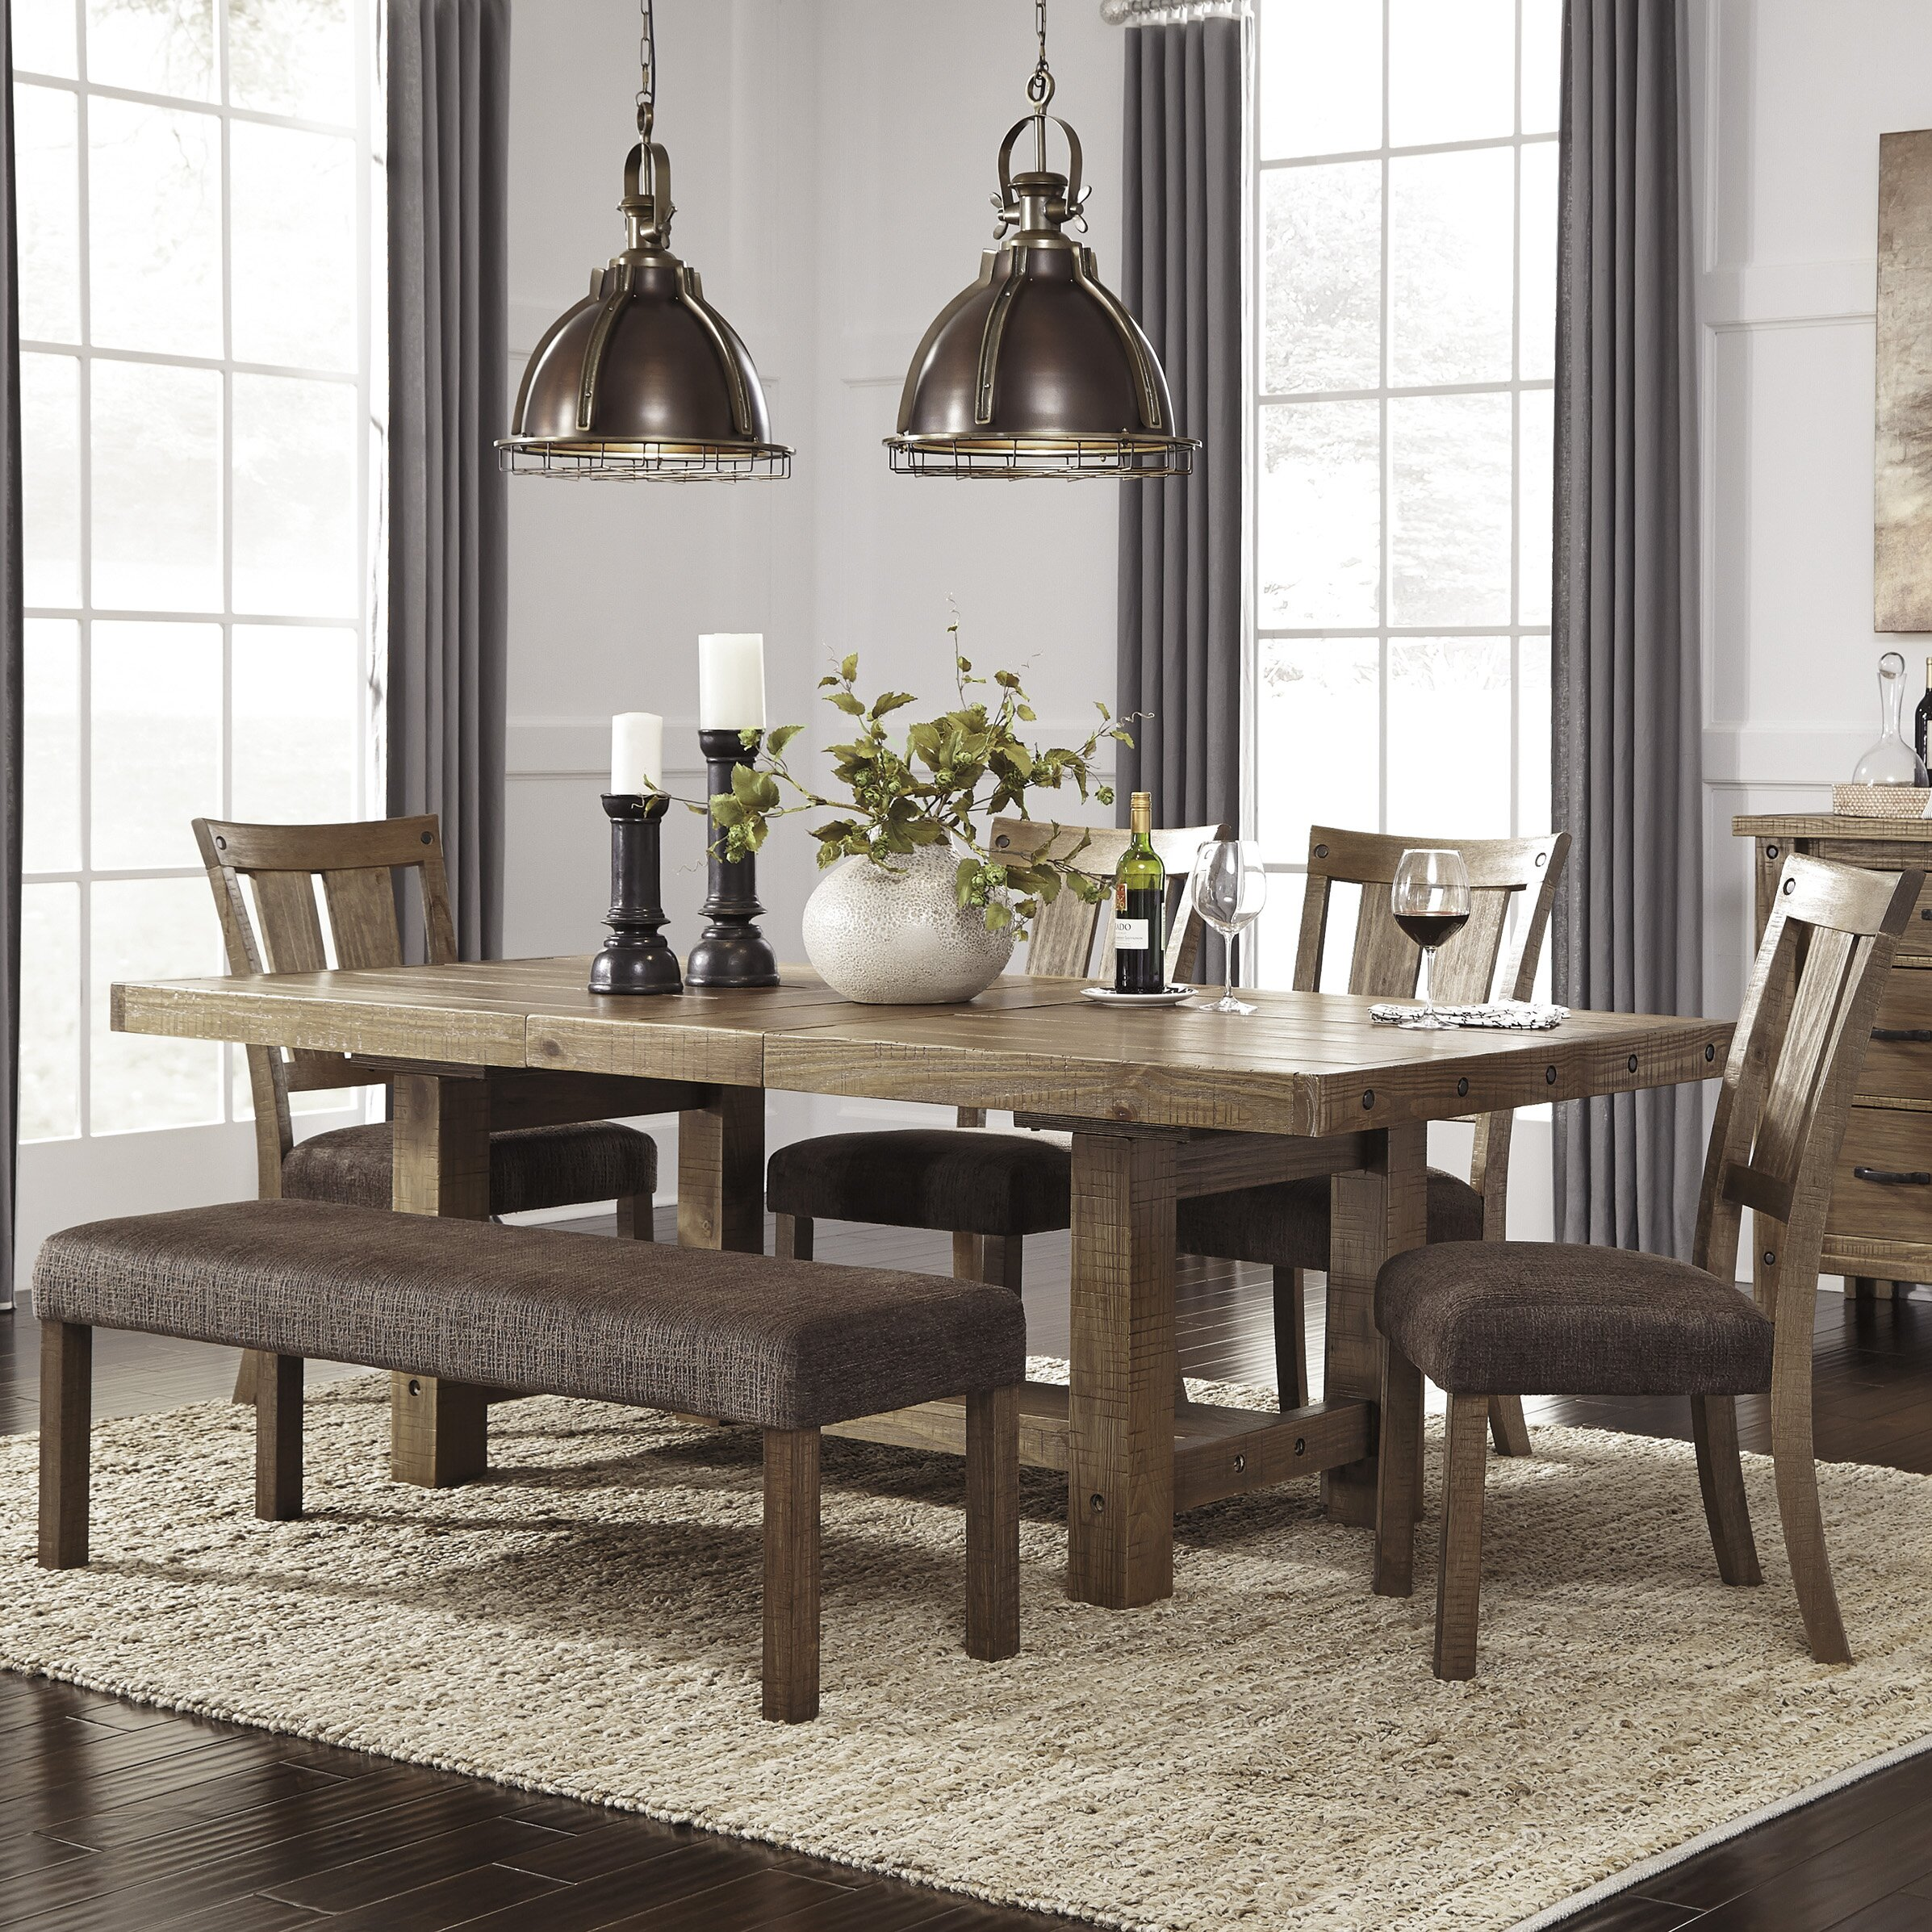 Signature design by ashley 9 piece dining set reviews for Dining table set latest design